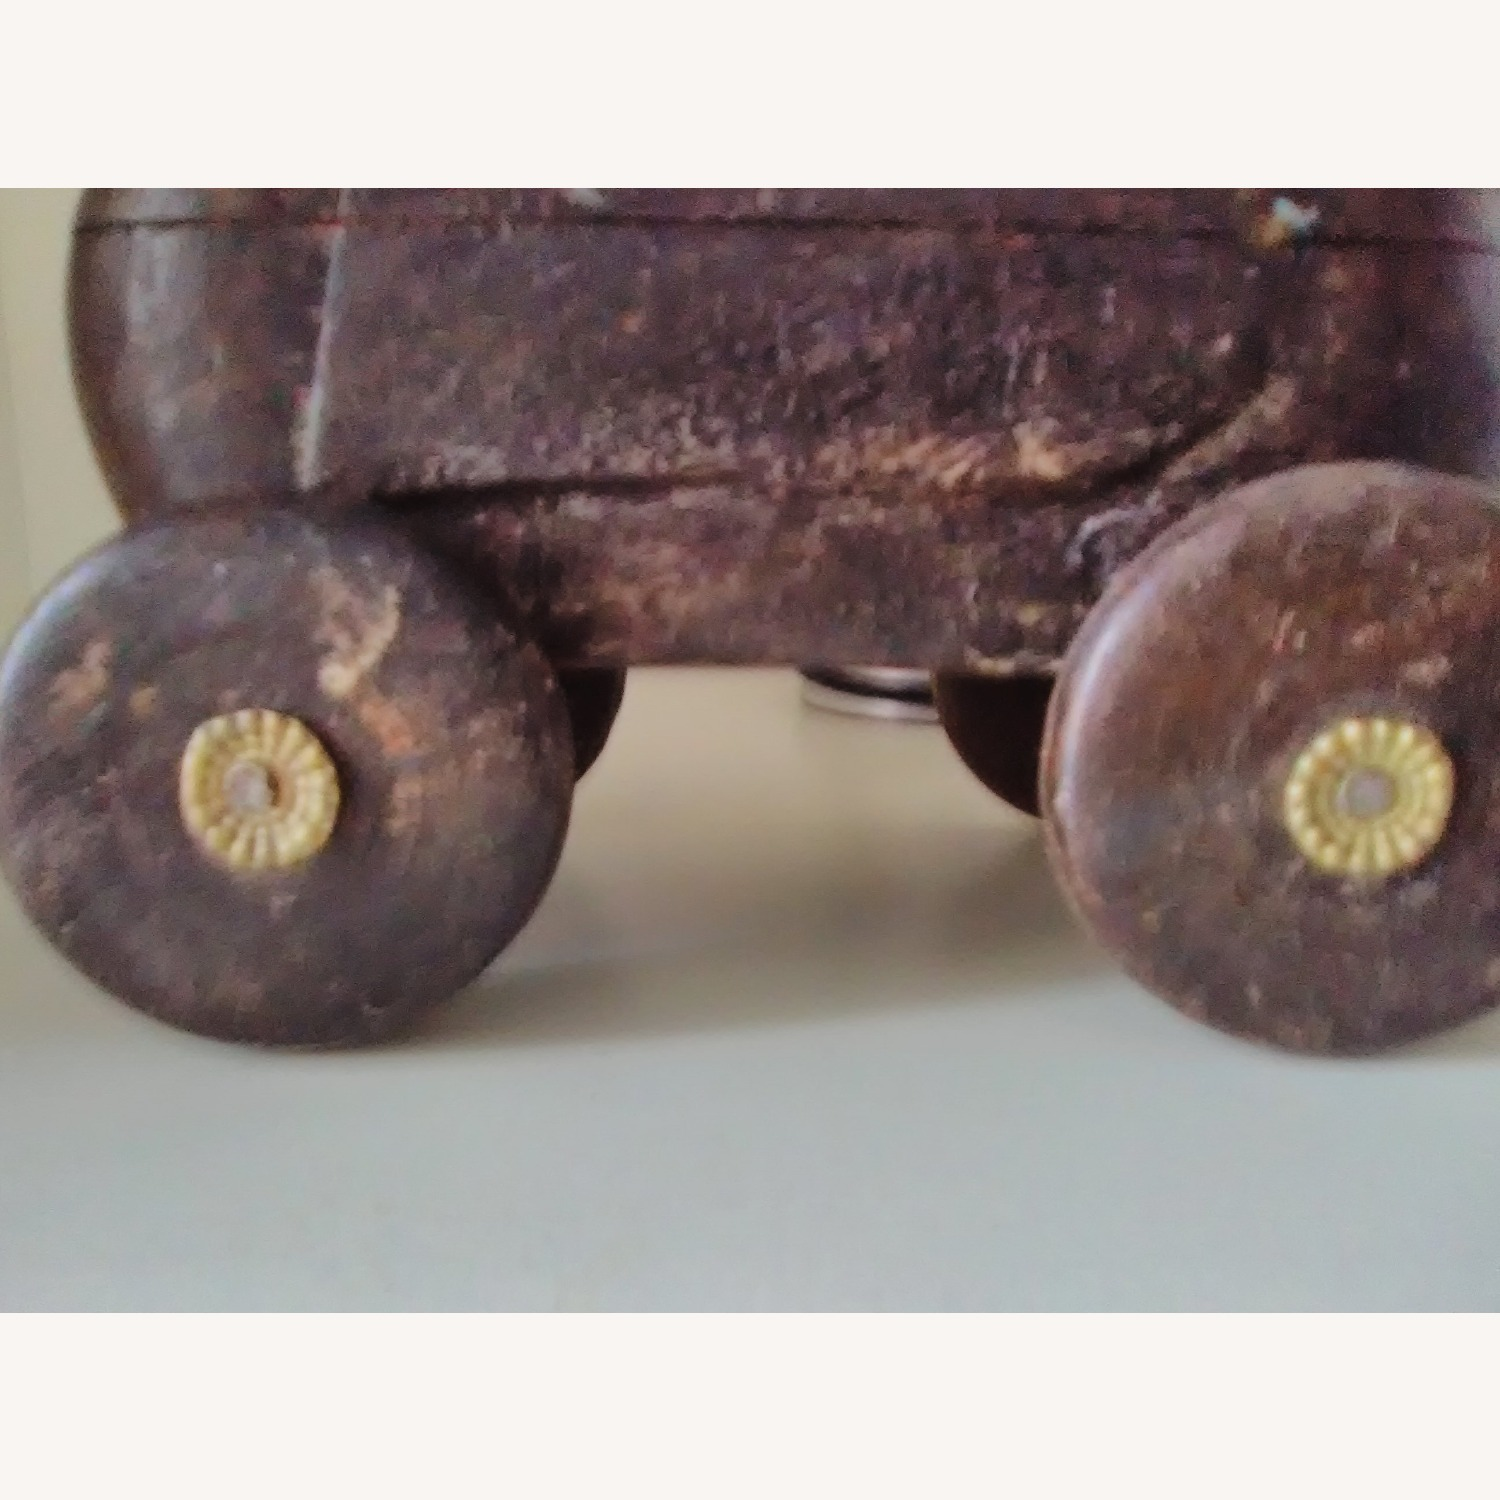 Vintage Handcrafted Wooden Horse On Wheels - image-6